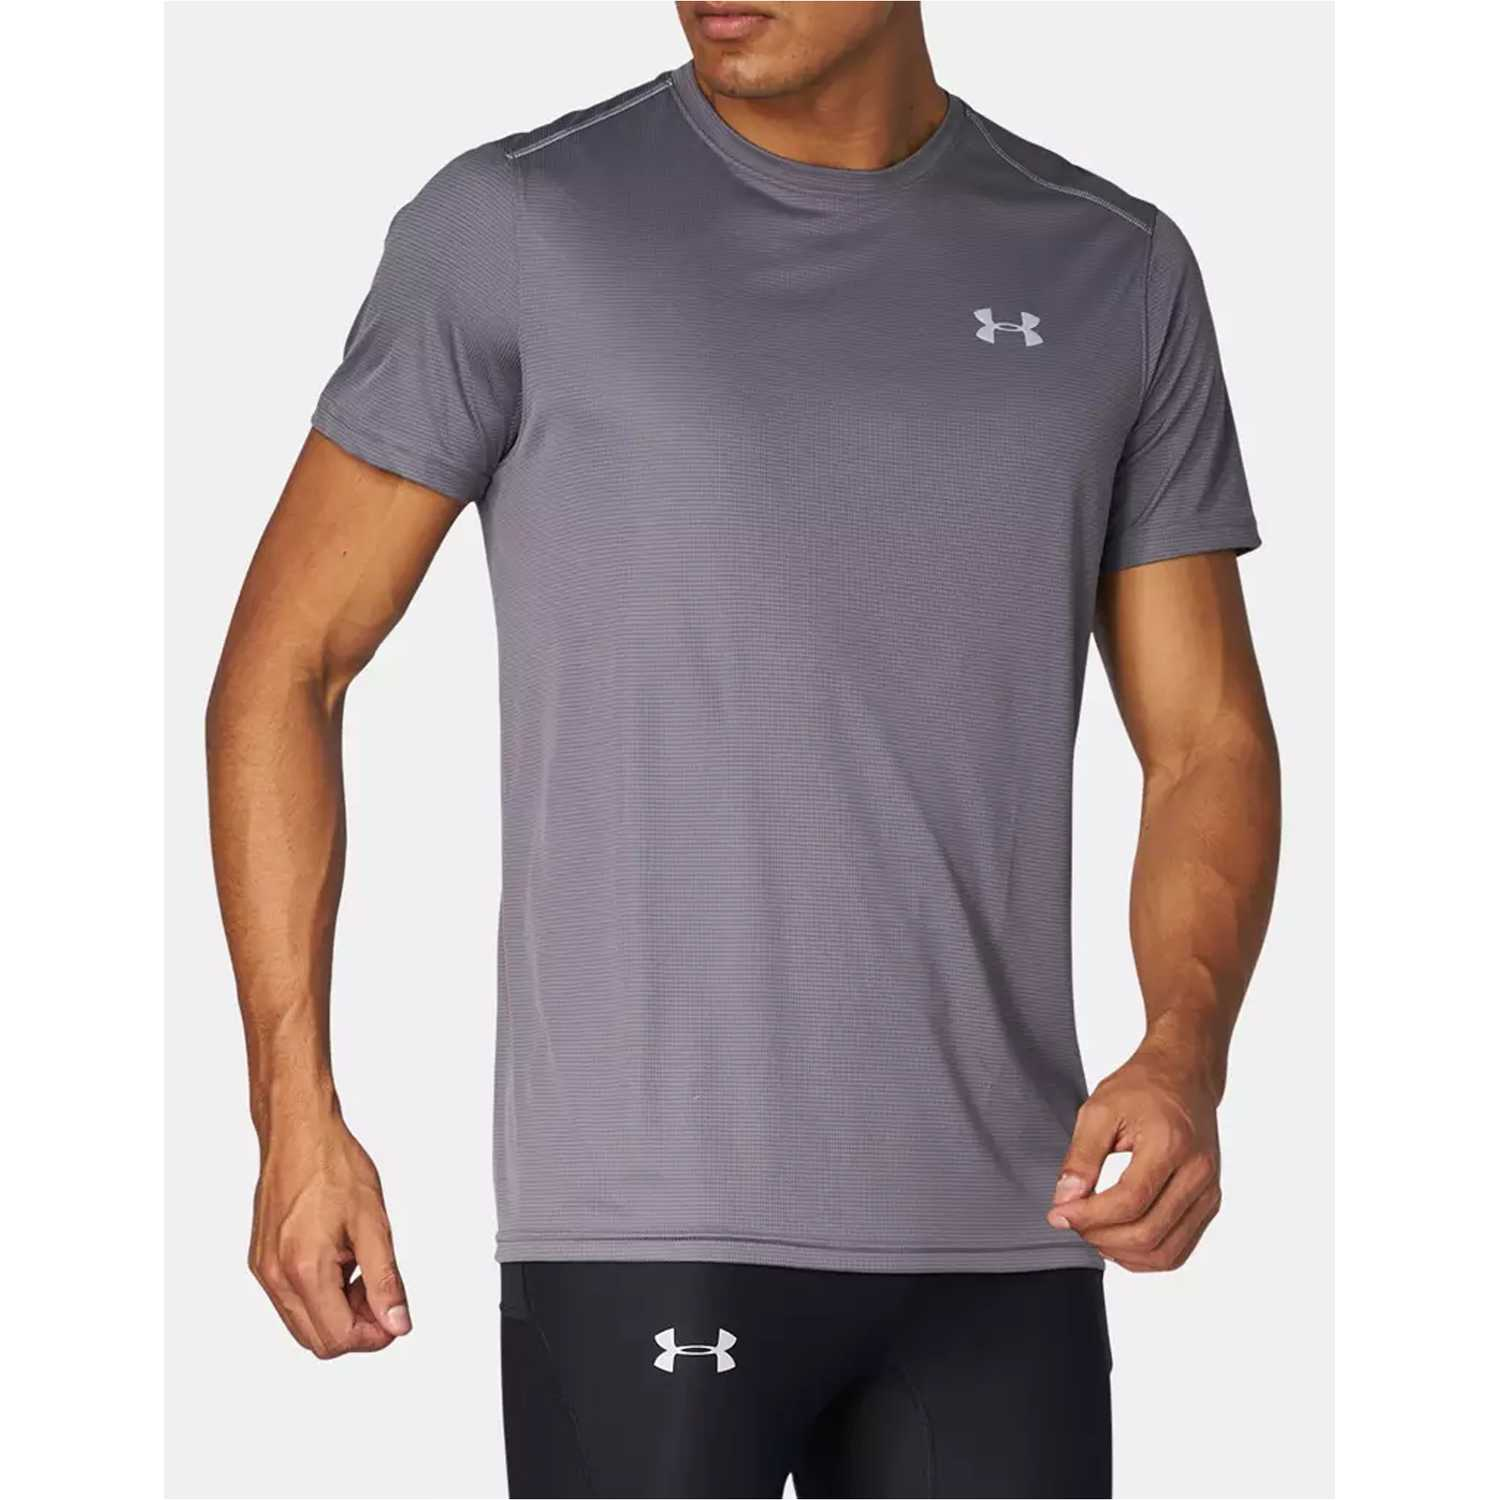 Muñequeras de Mujer Under Armour Gris / plomo ua coolswitch run s/s v2